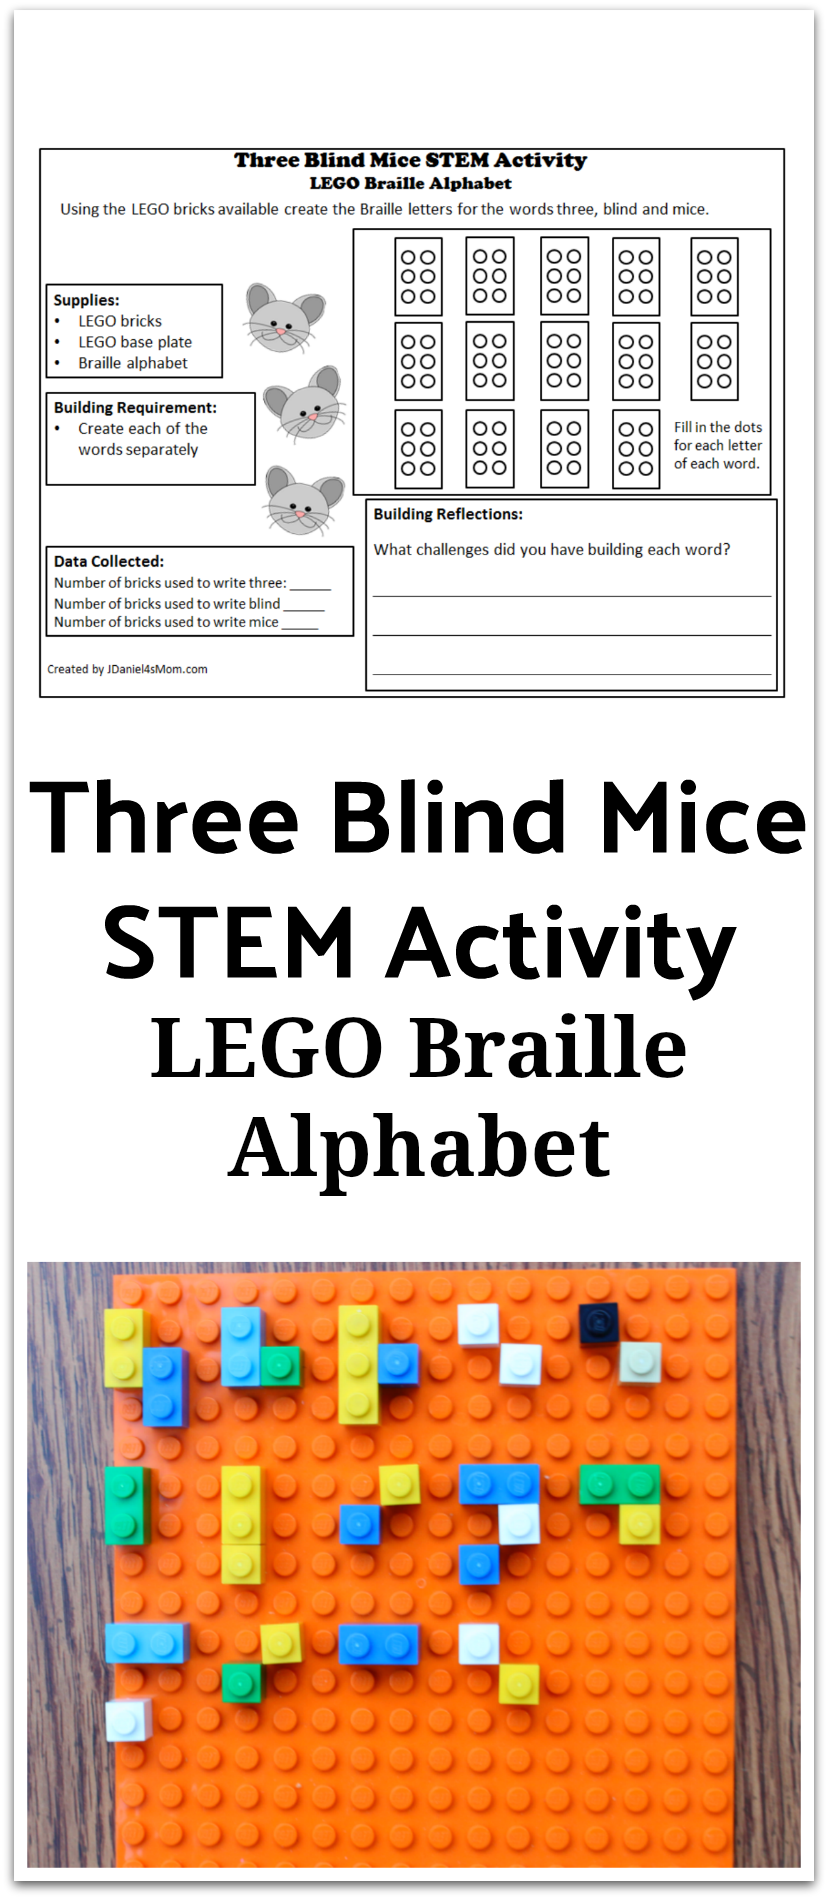 LEGO Braille Alphabet : Three Blind Mice STEM Activity - This activity has a planning and reflections printable. It gives your children at home or your students at school a chance to explore Braille.